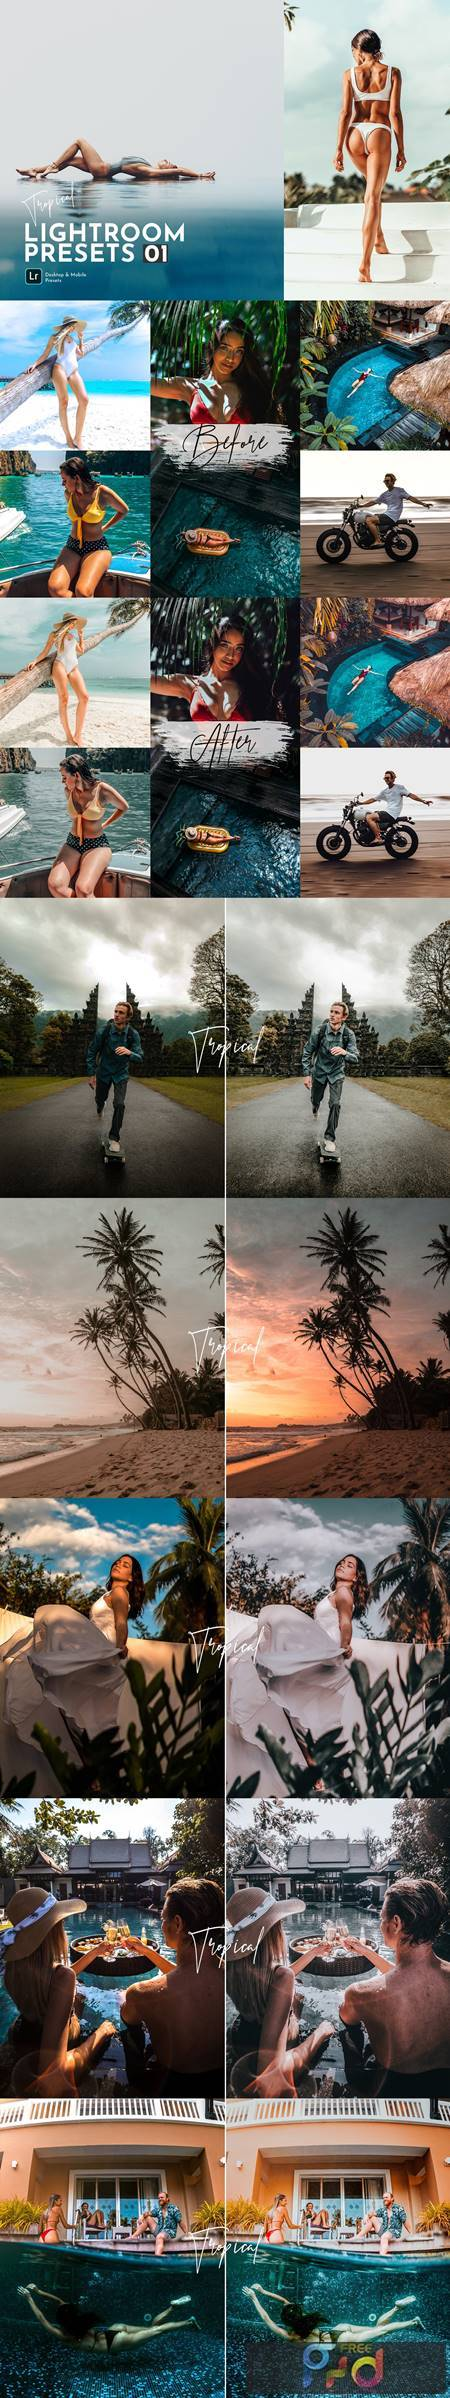 Tropical Lightroom Presets Pack 5469399 1